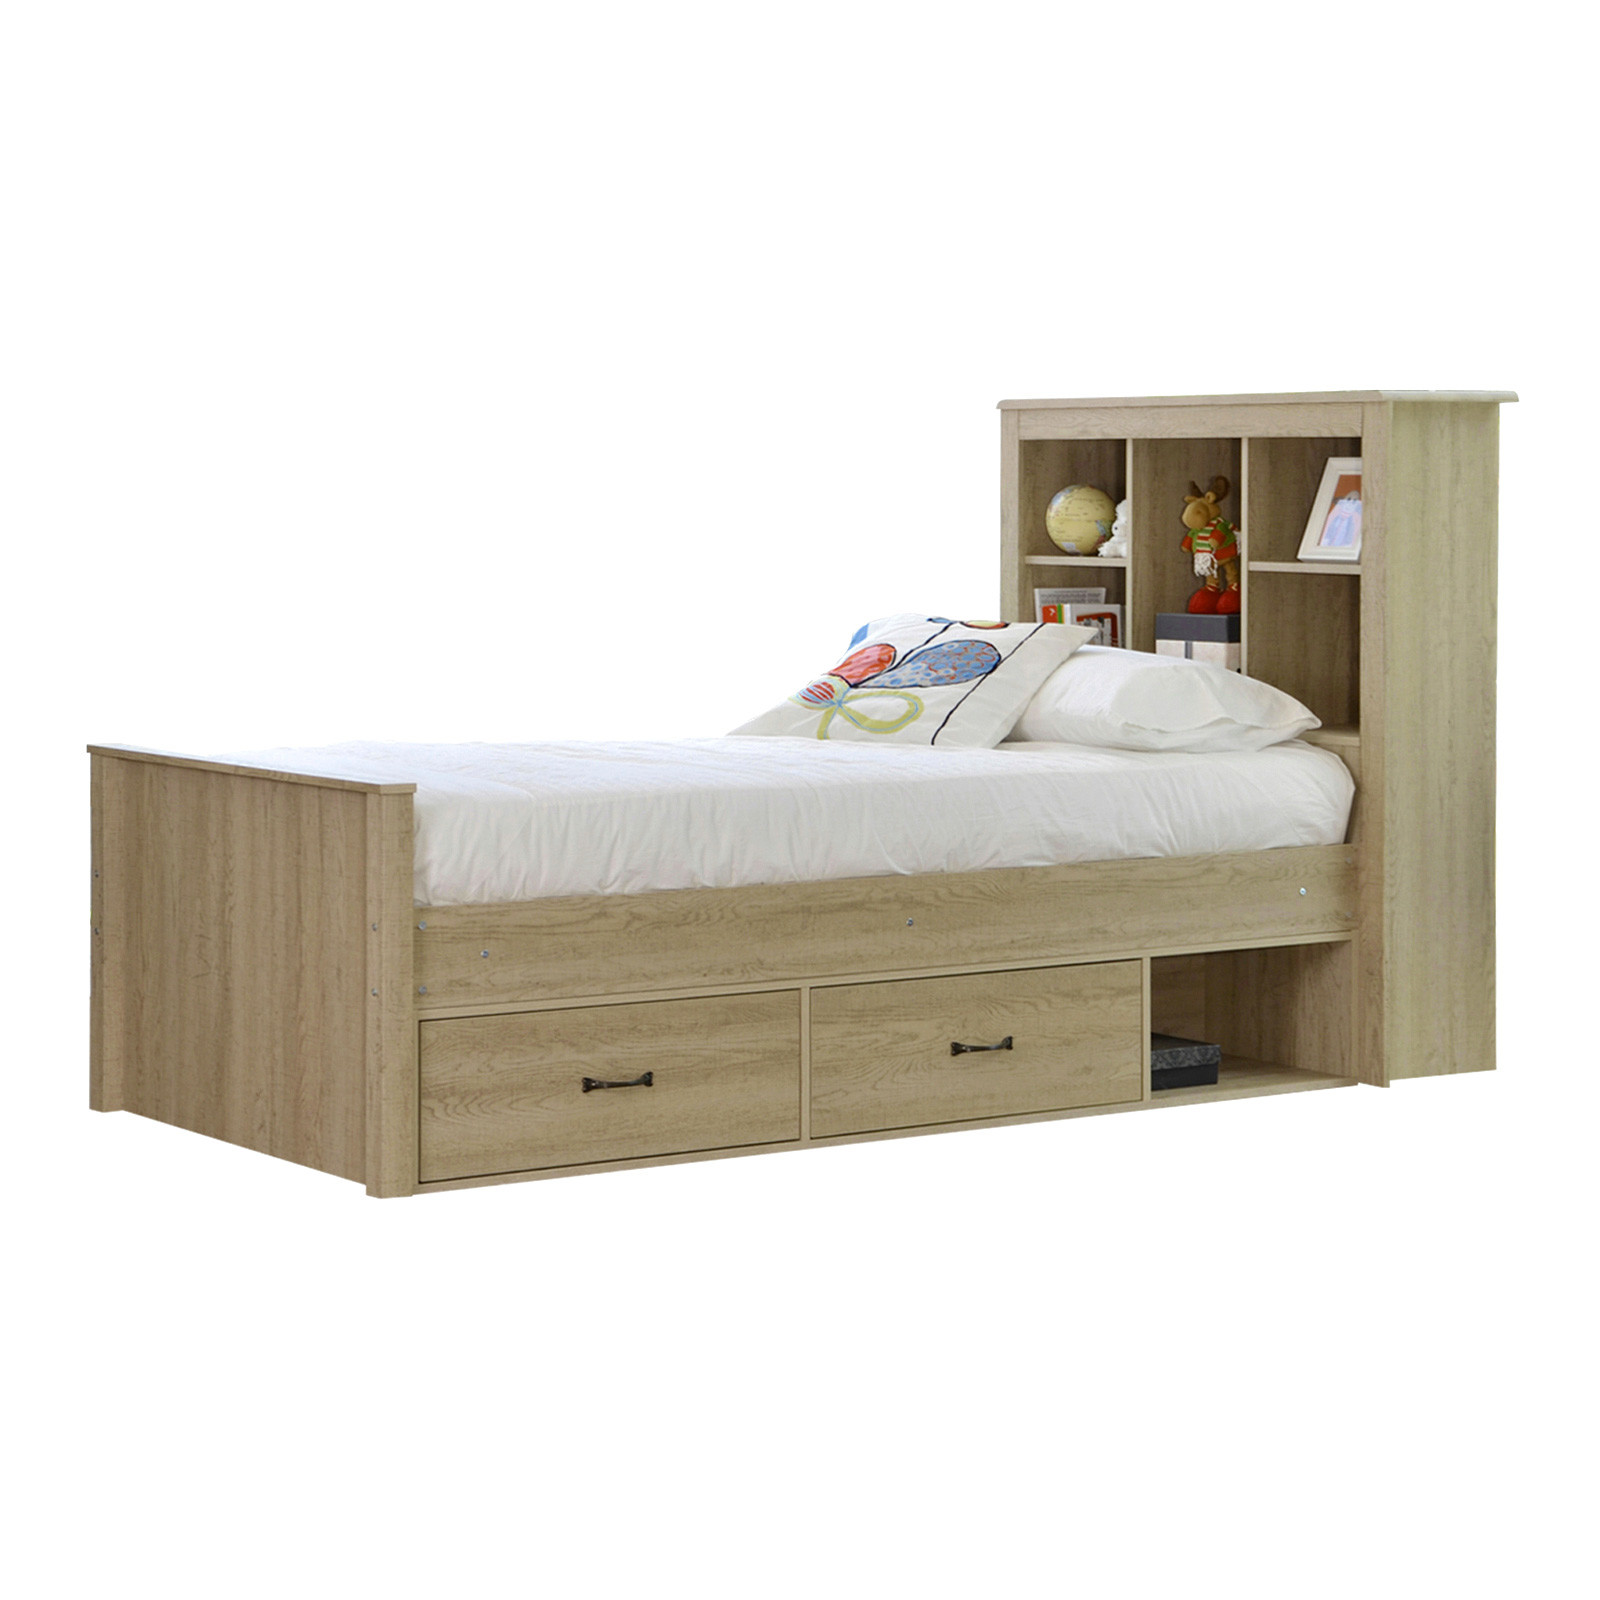 new oak jeppe king single bed deluxe mattress vic. Black Bedroom Furniture Sets. Home Design Ideas